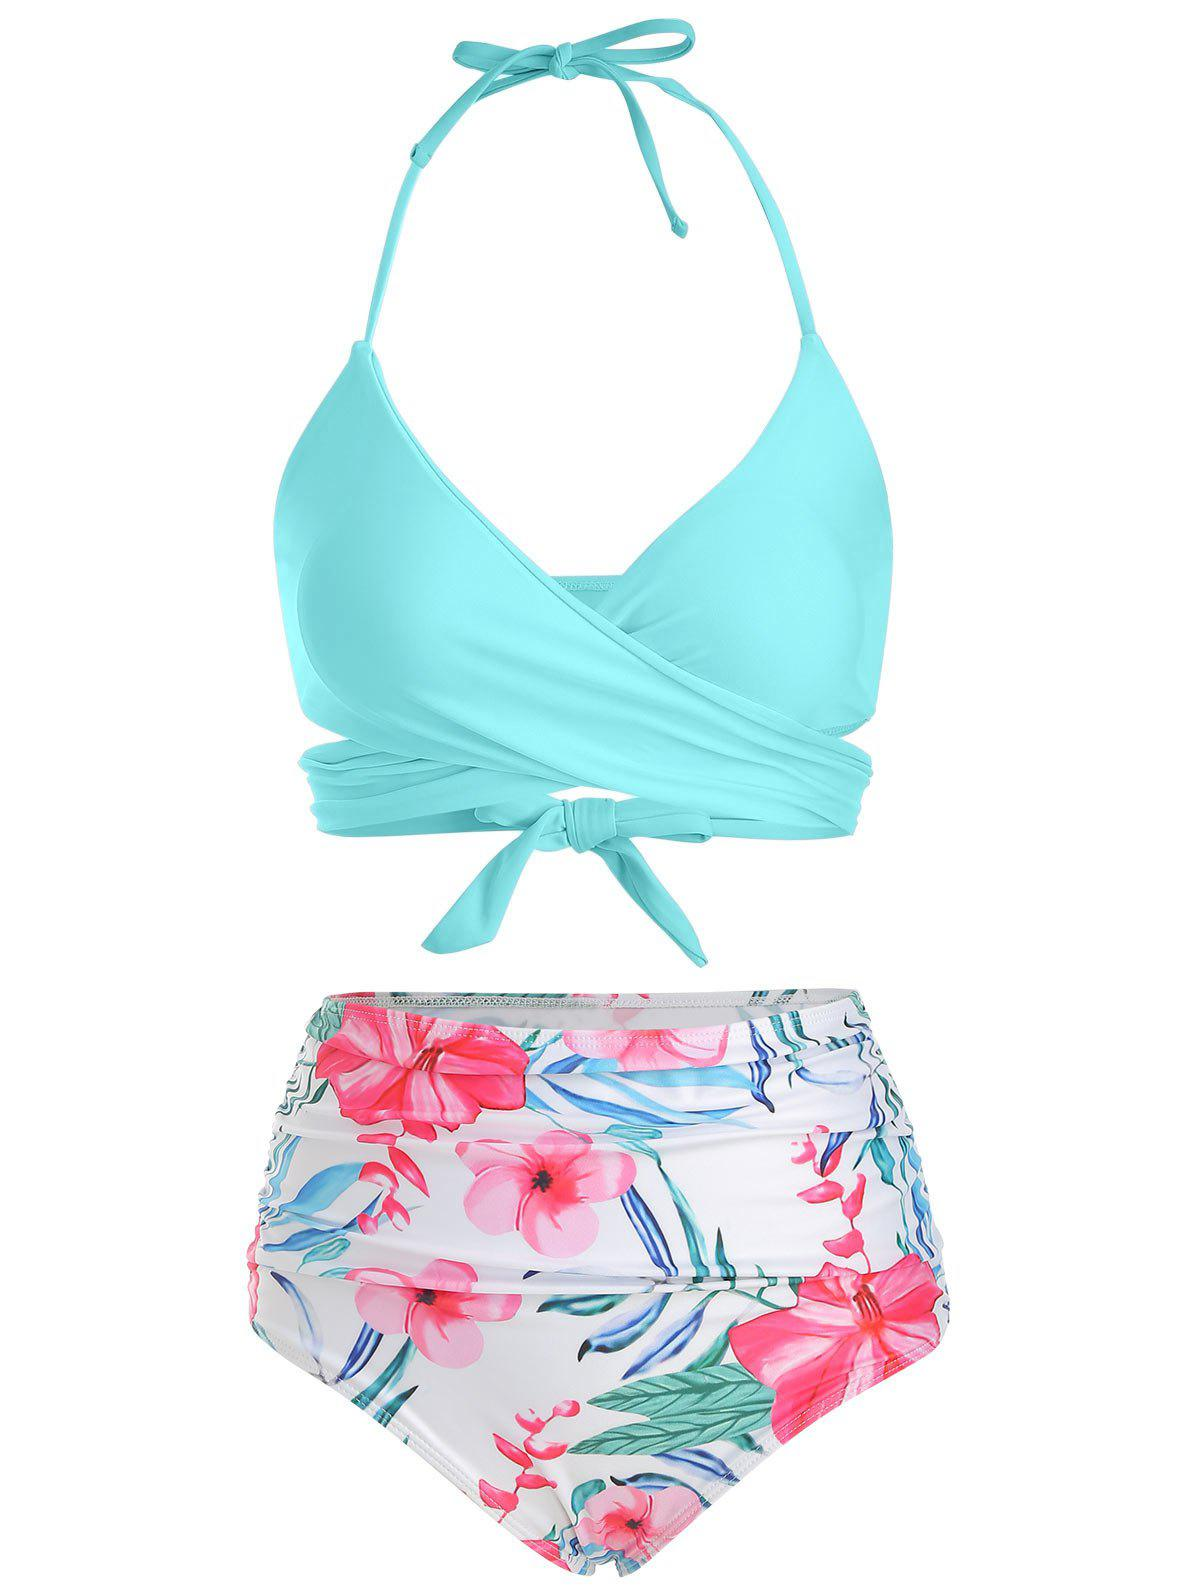 New Floral Print Ruched Wrap Bikini Swimsuit